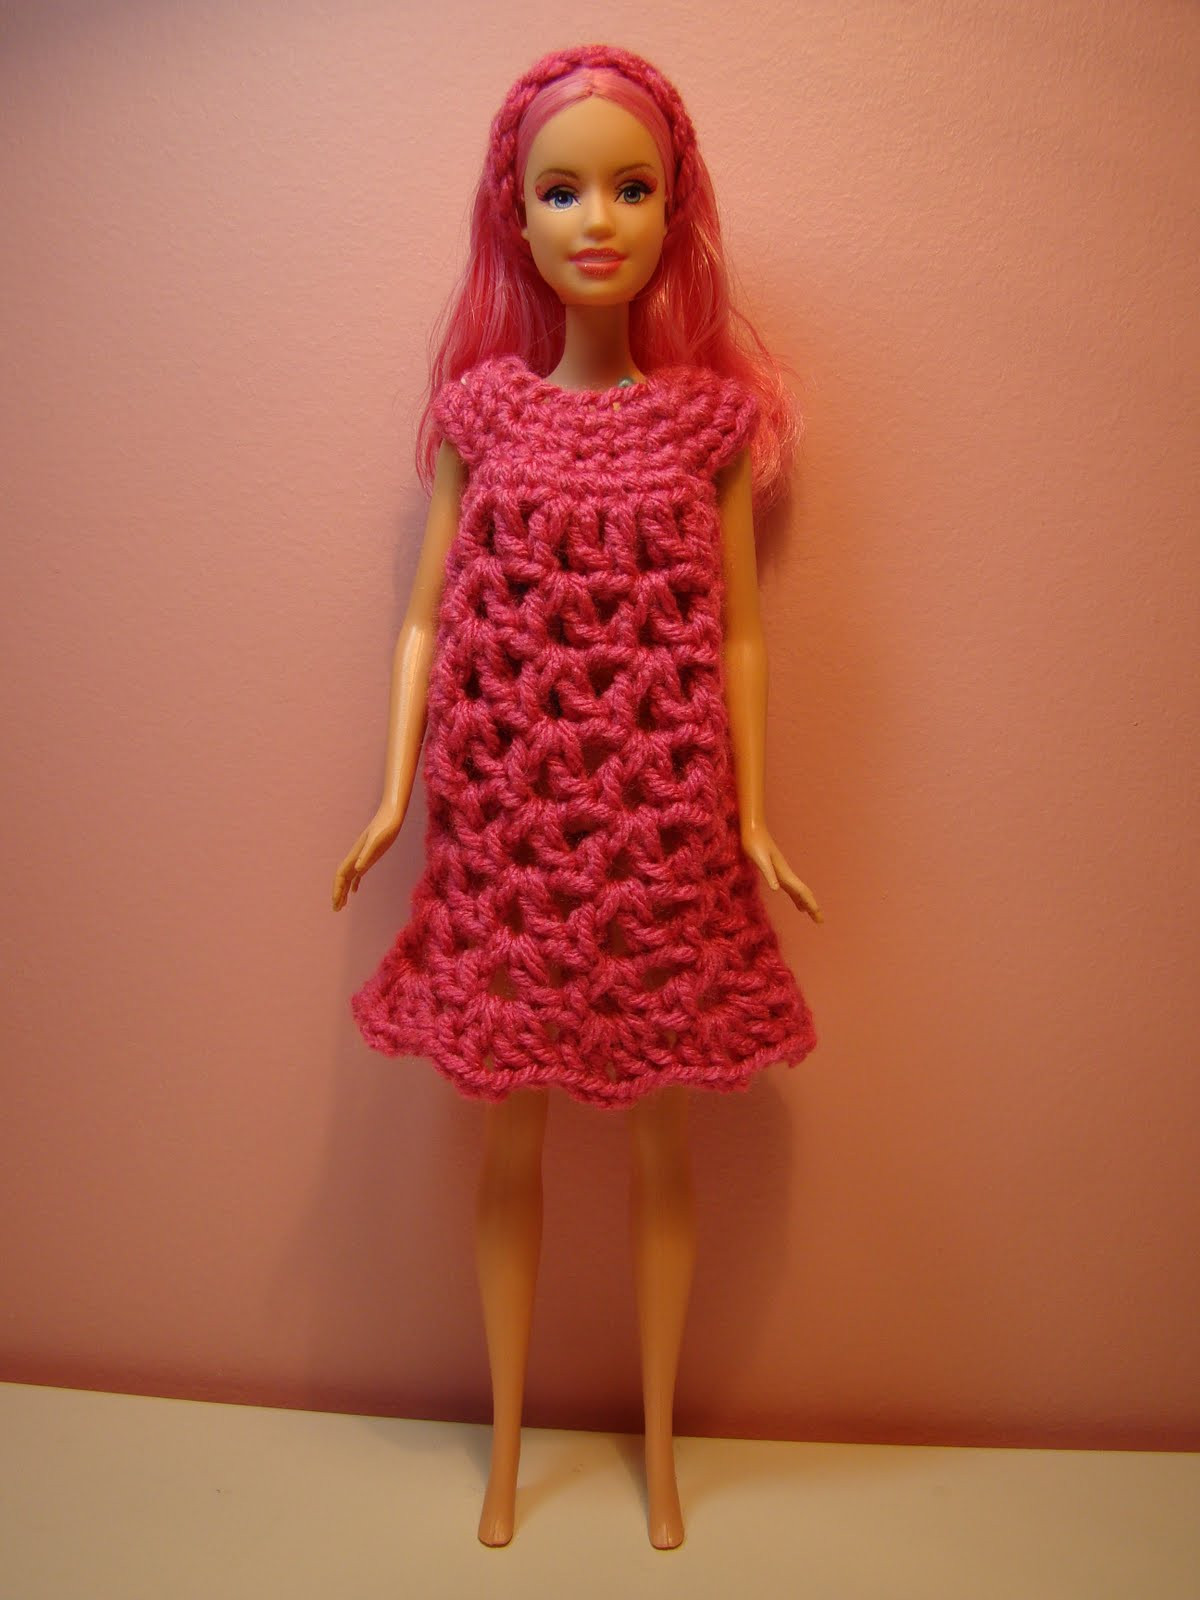 Elegant Free Barbie Dress Patterns to Crochet Dancox for Barbie Doll Clothes Patterns Of Contemporary 50 Pictures Barbie Doll Clothes Patterns